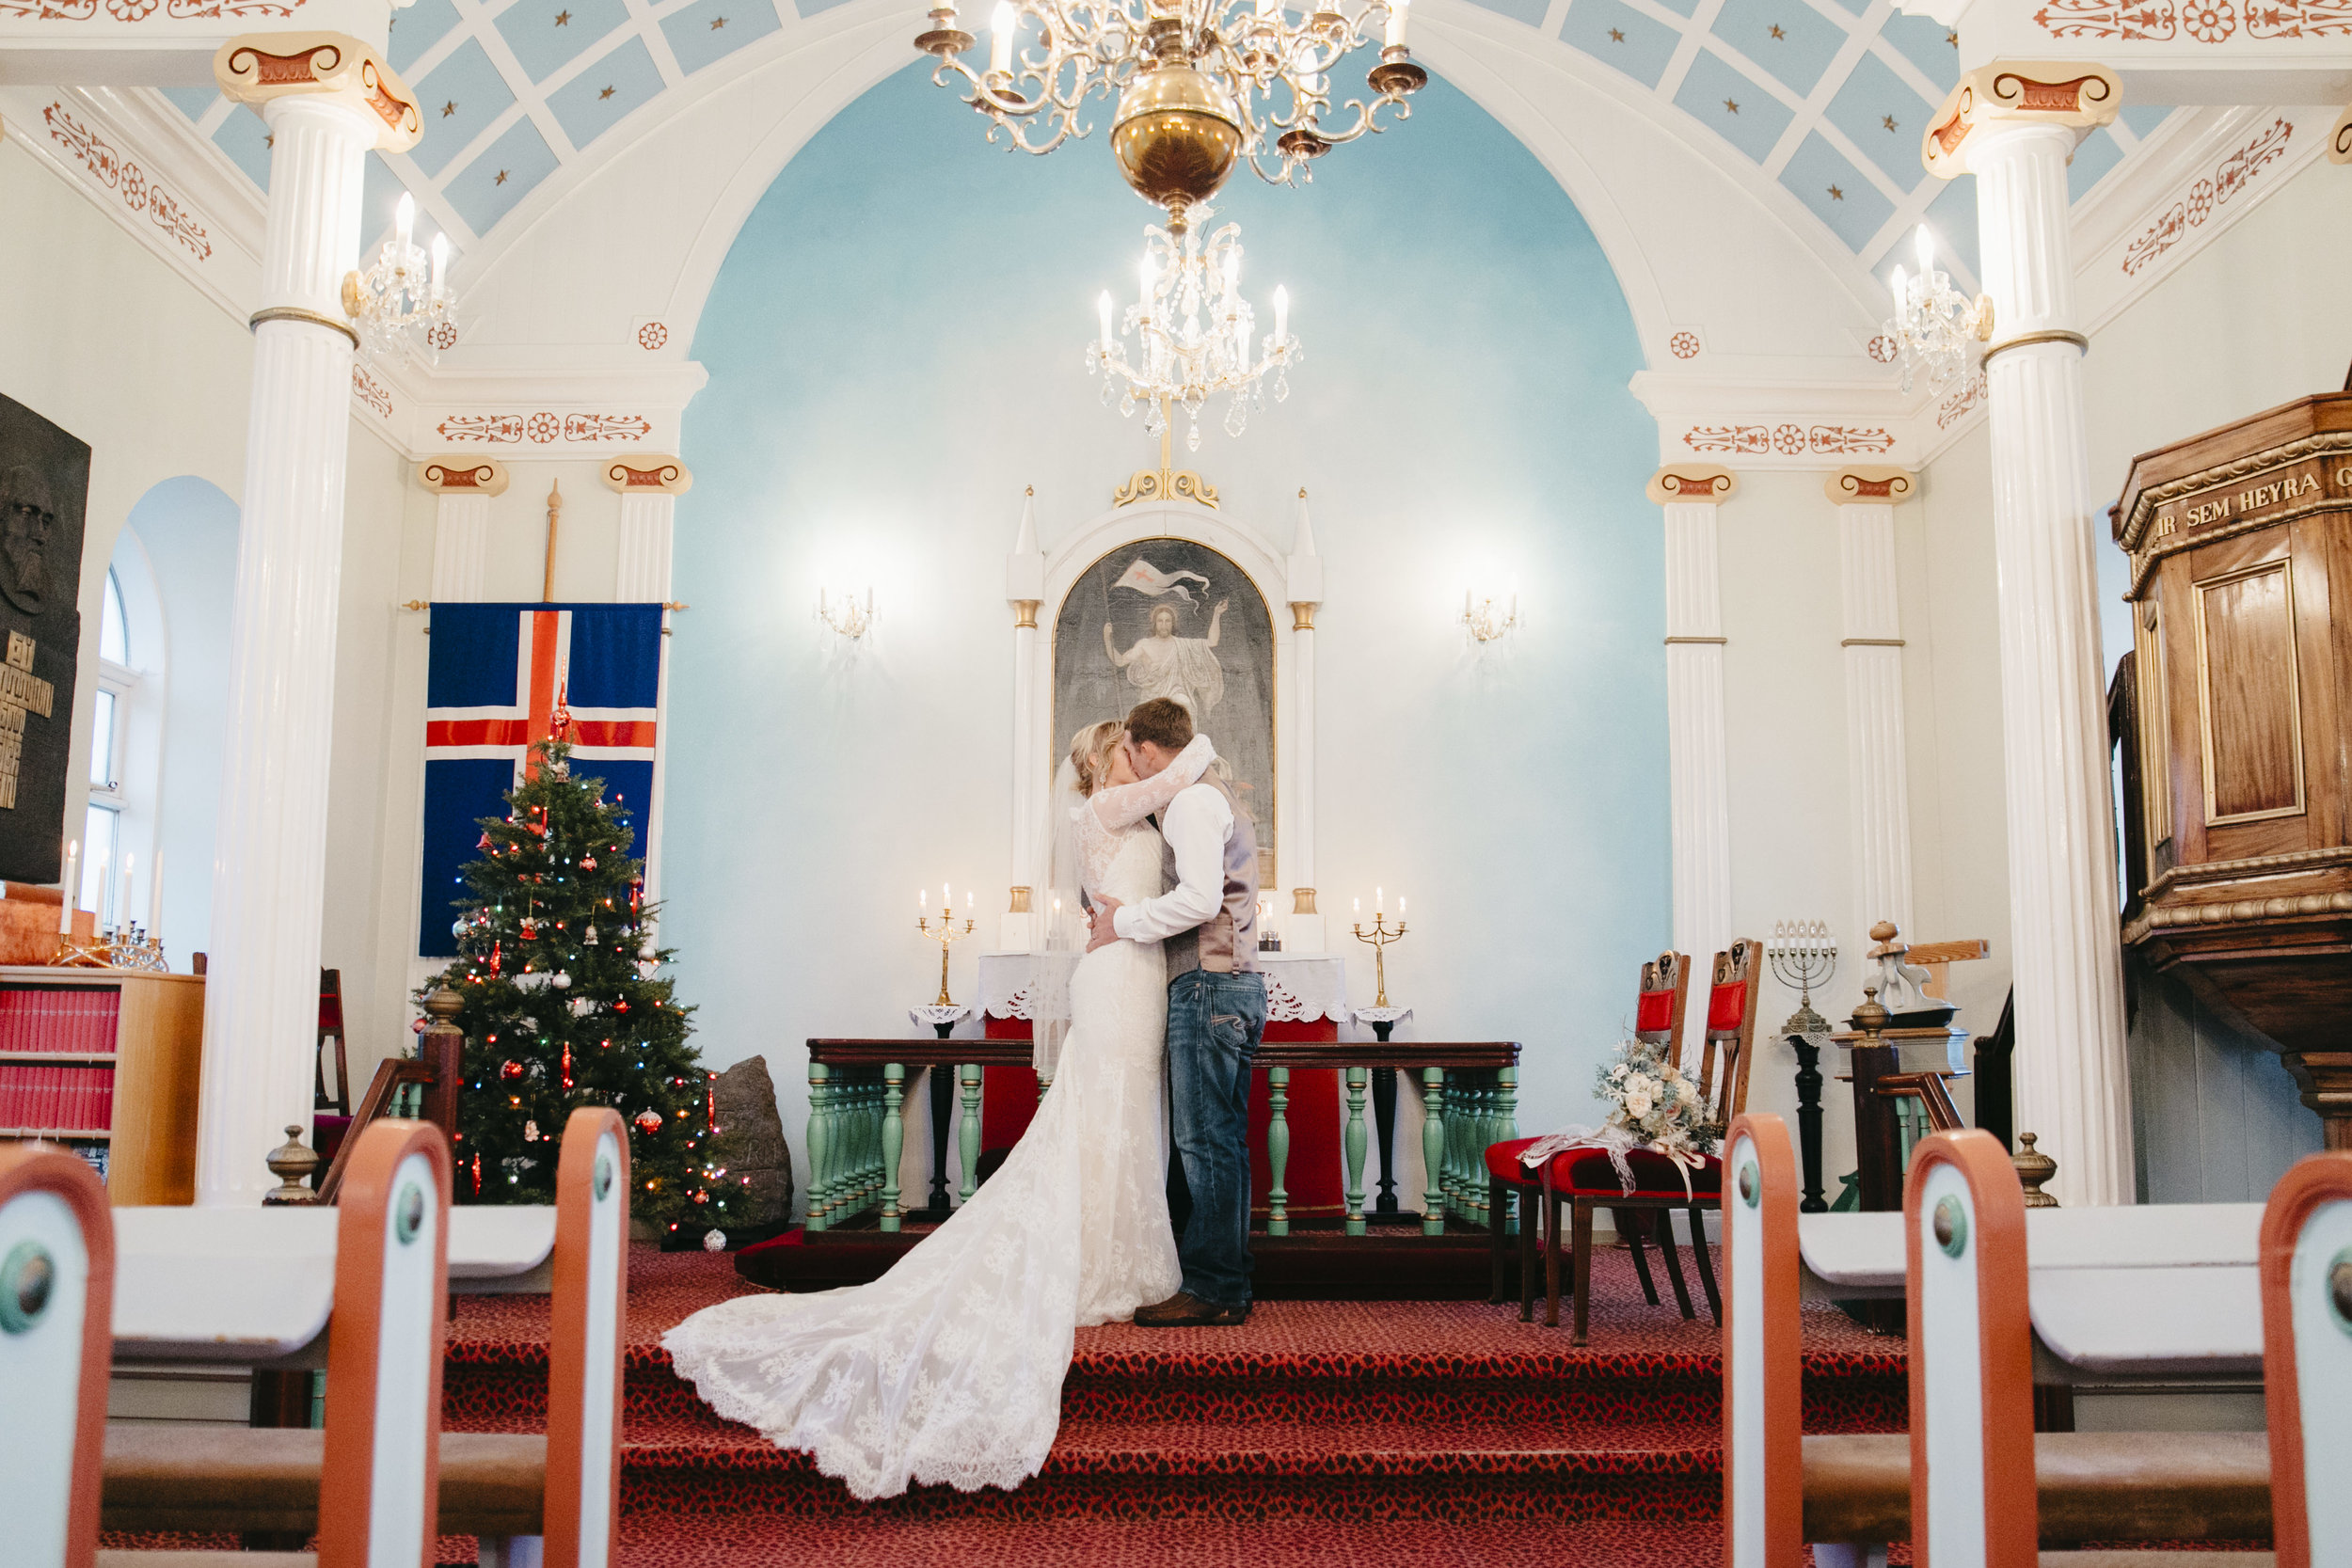 The bride and groom seal their vows with a kiss in Hvalsneskirkja Church while eloping in Iceland with their photographers Colby and Jess.